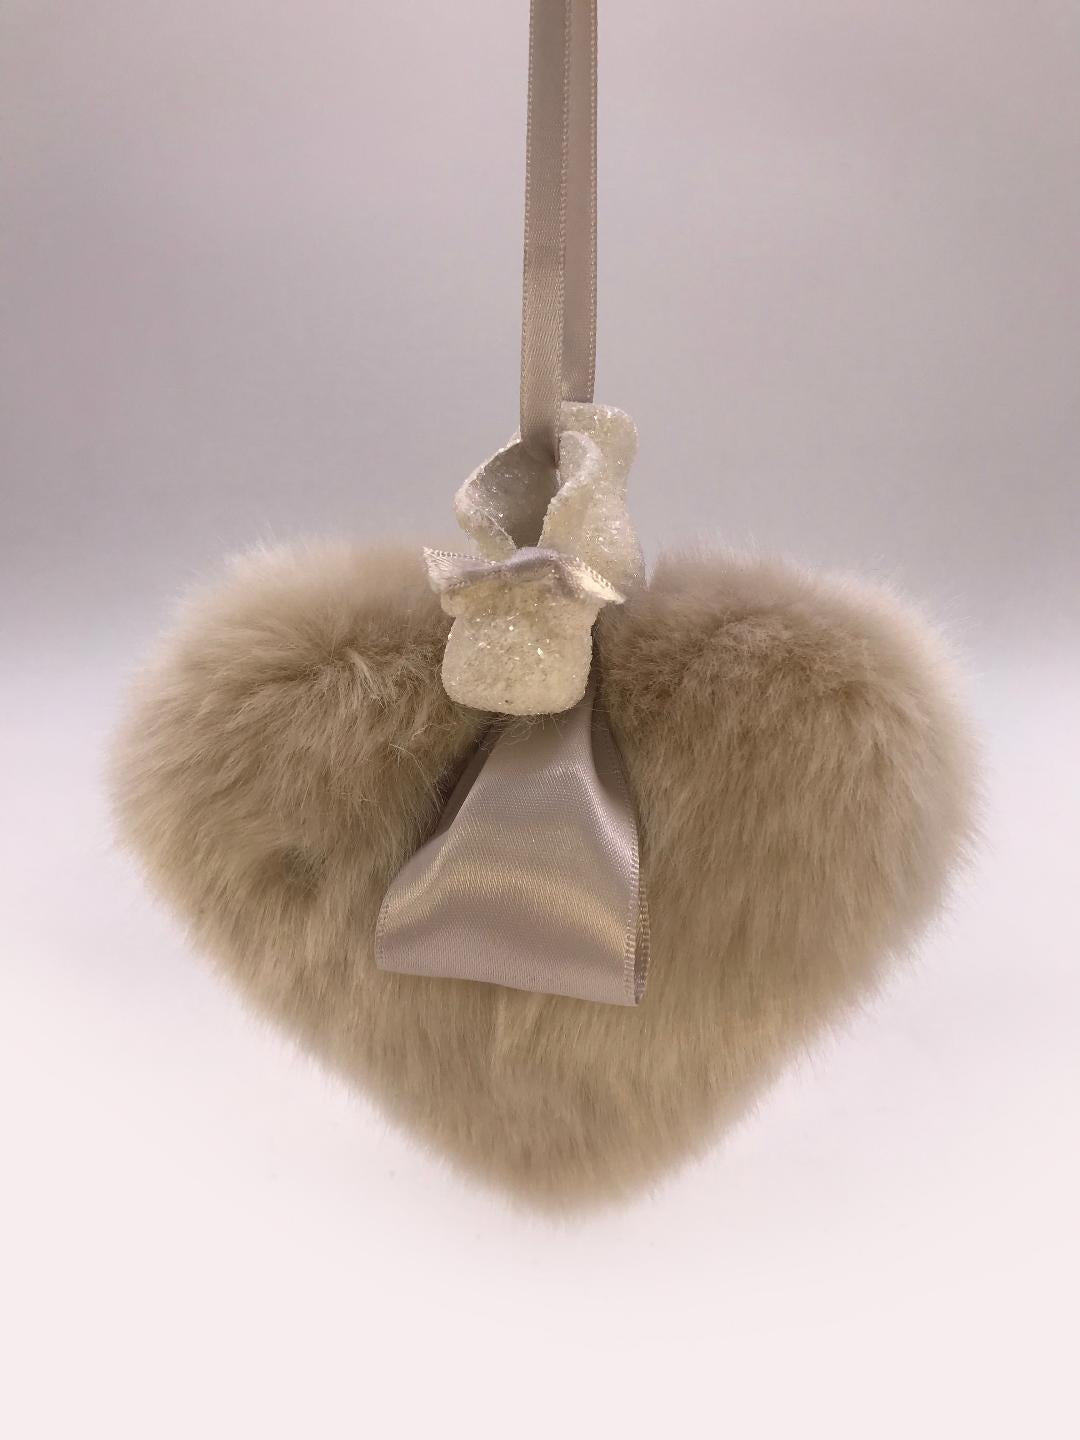 Booties on Heart Ornament - Fawn Fur